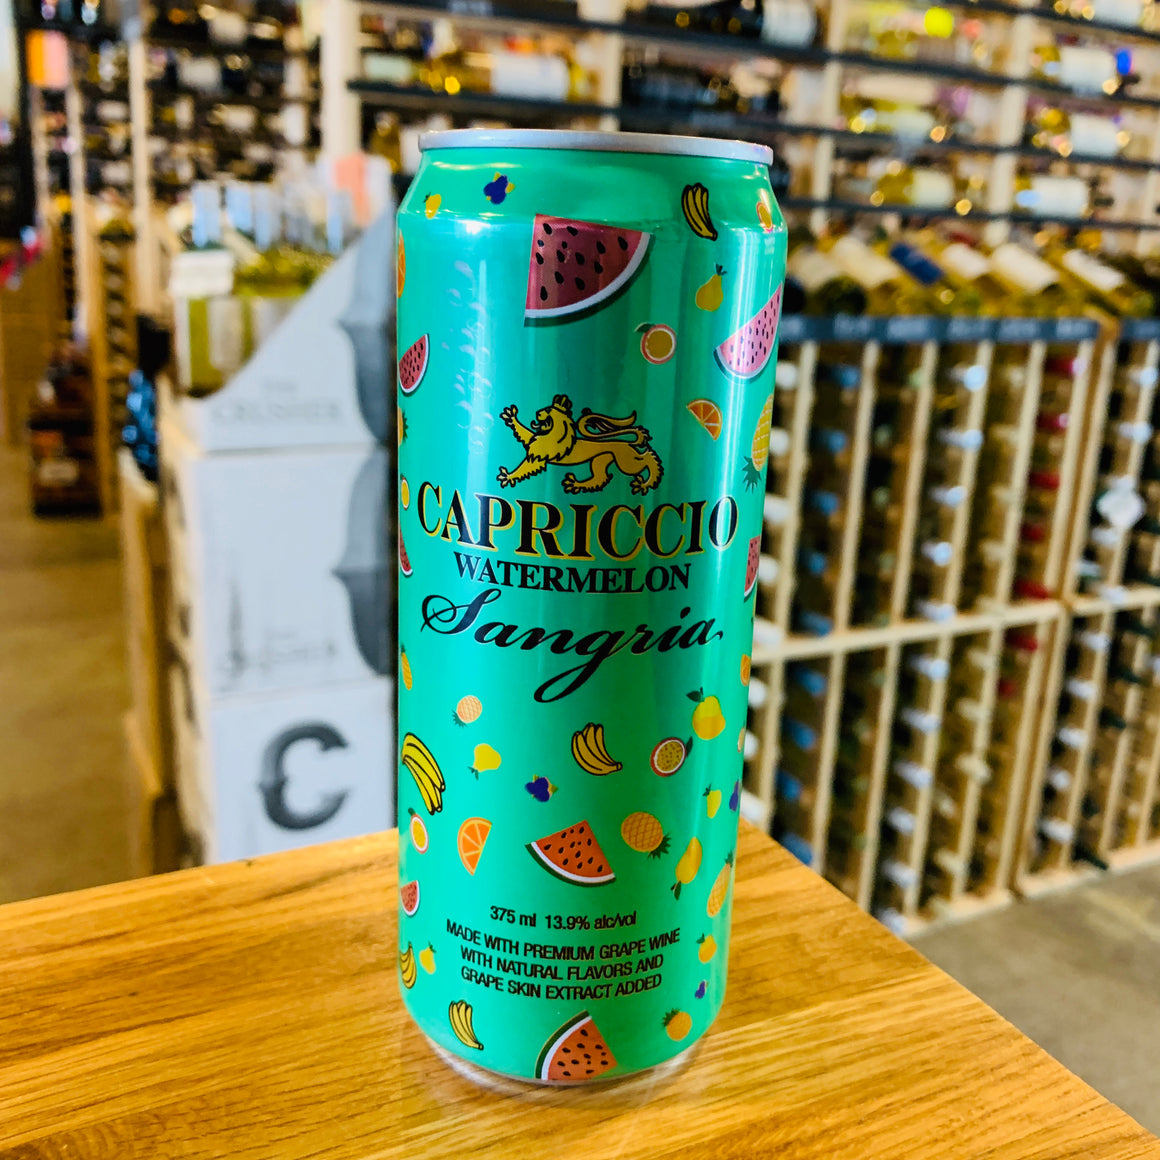 CAPRICCIO WATERMELON SANGRIA 375ML CAN